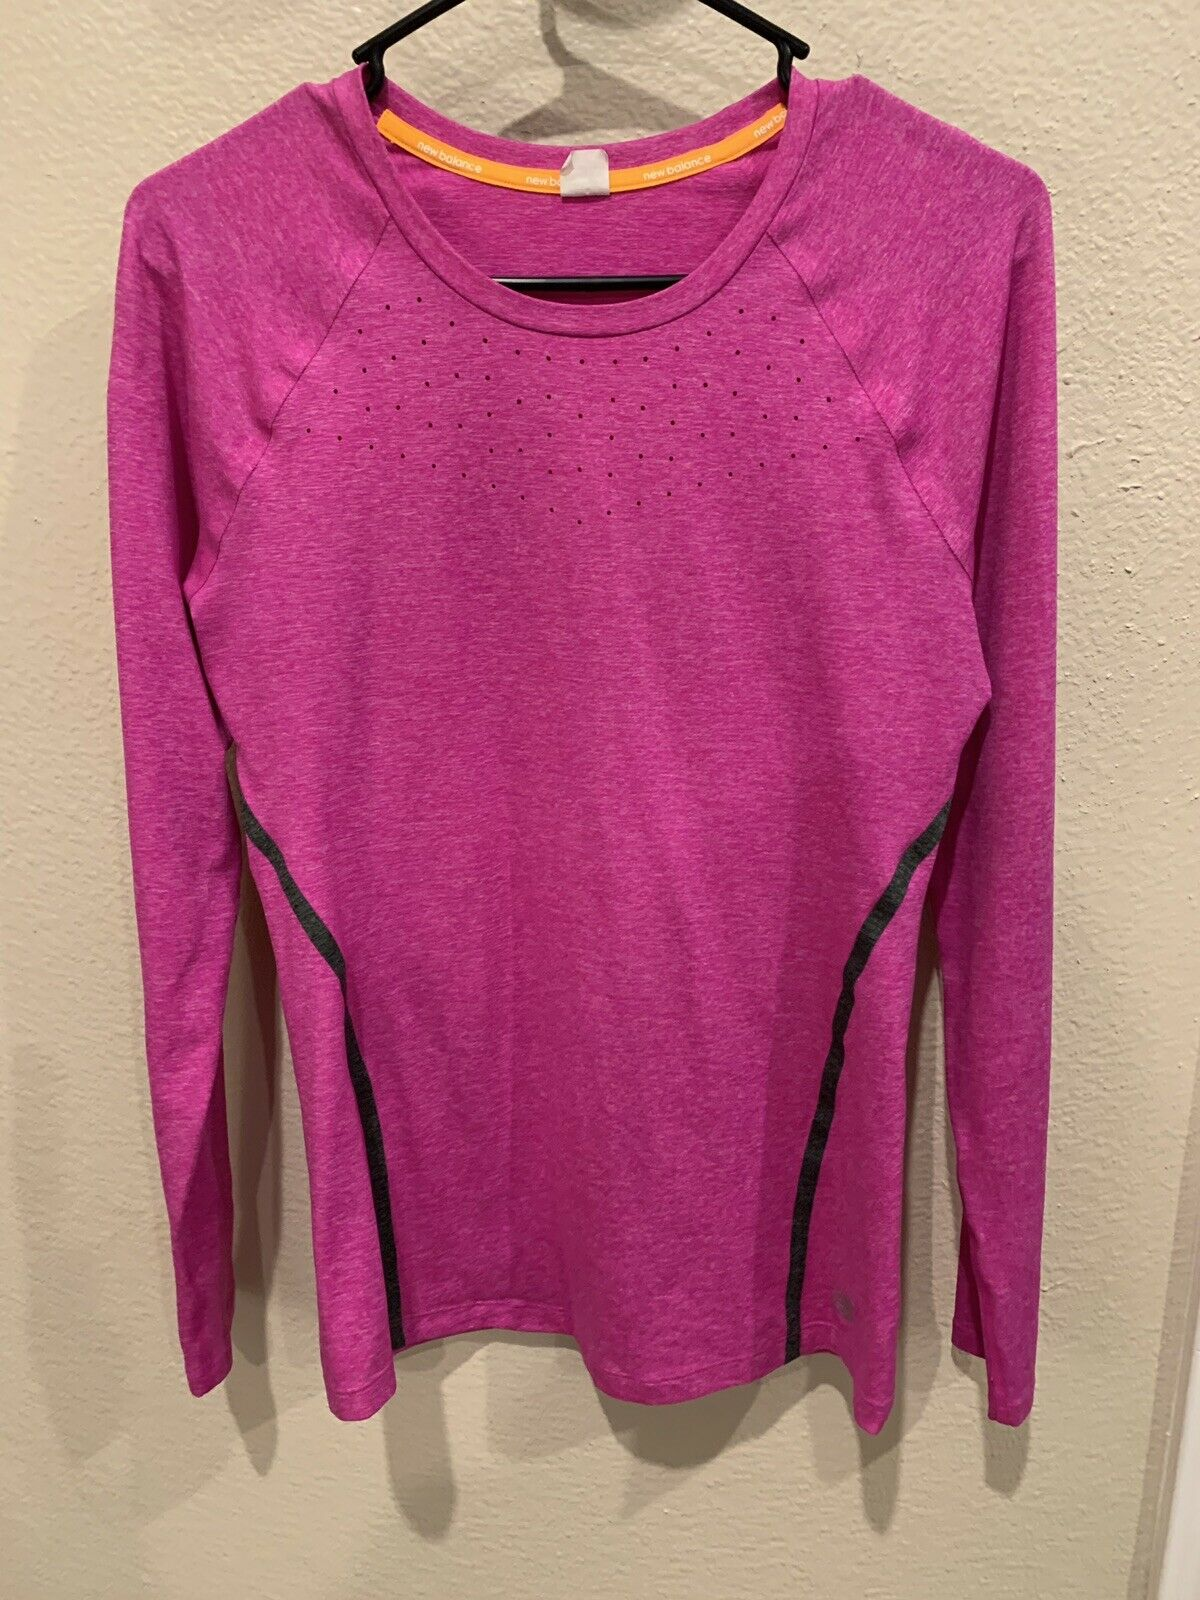 New Balance Women's Trinamic Long Sleeve Top, Pink , Size Small